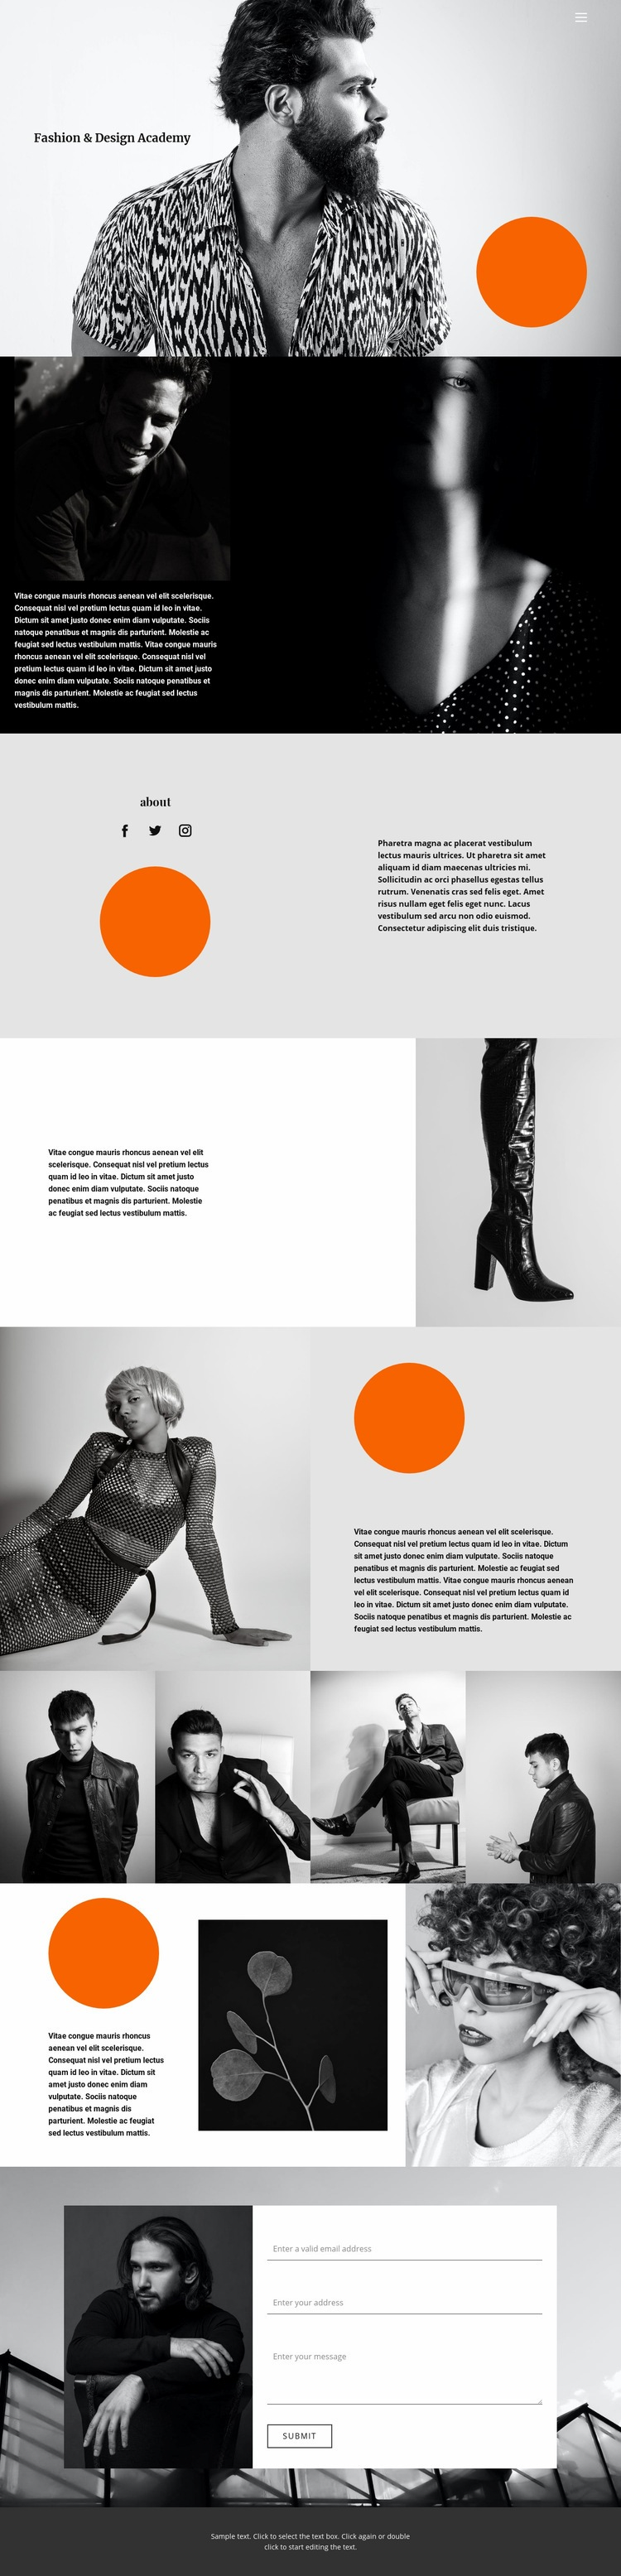 Choose your style Web Page Designer